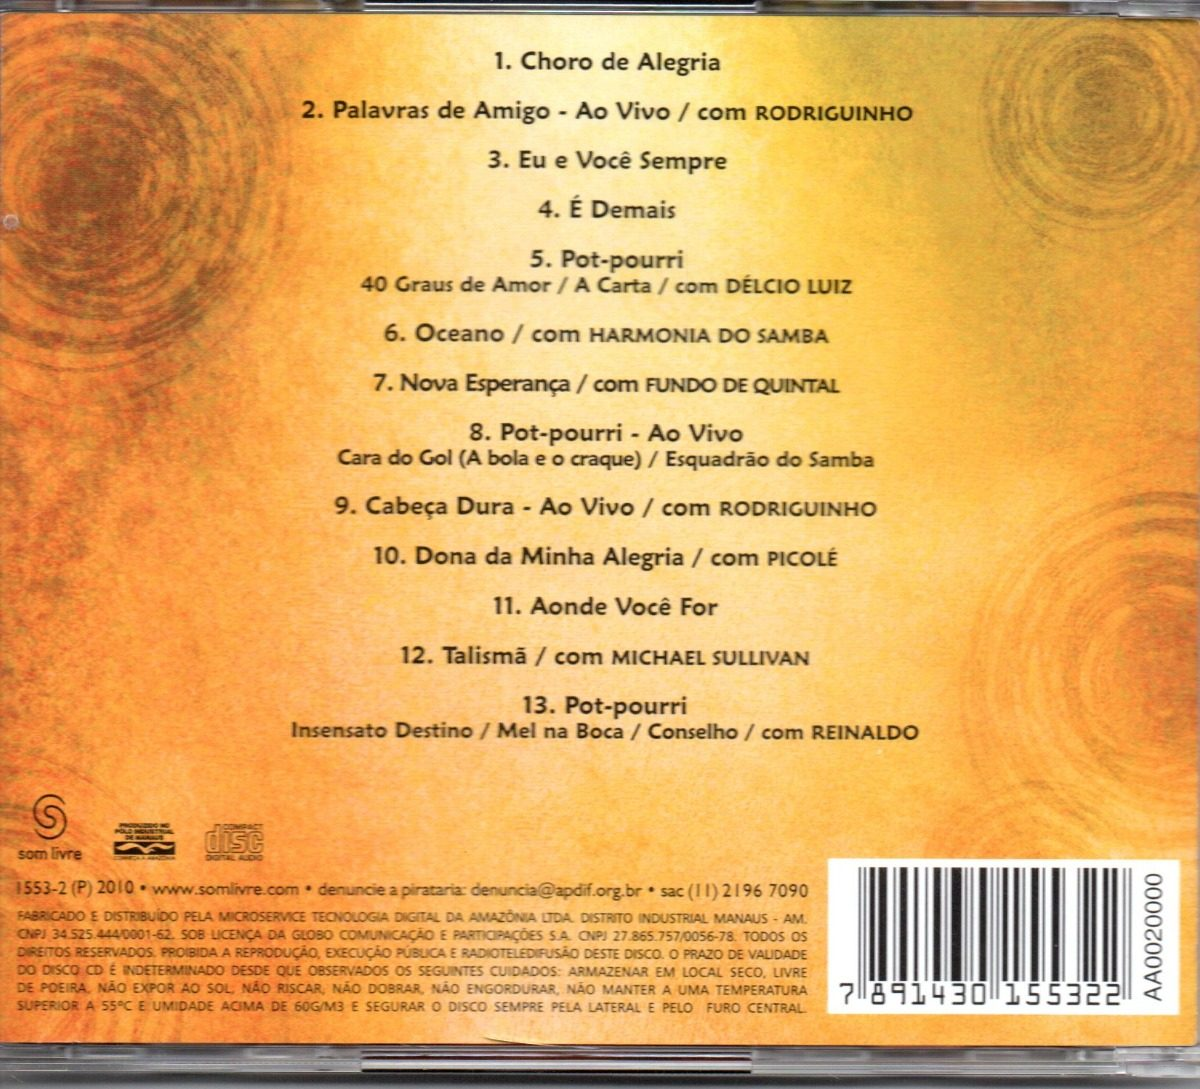 gratis cd do exaltasamba roda de samba